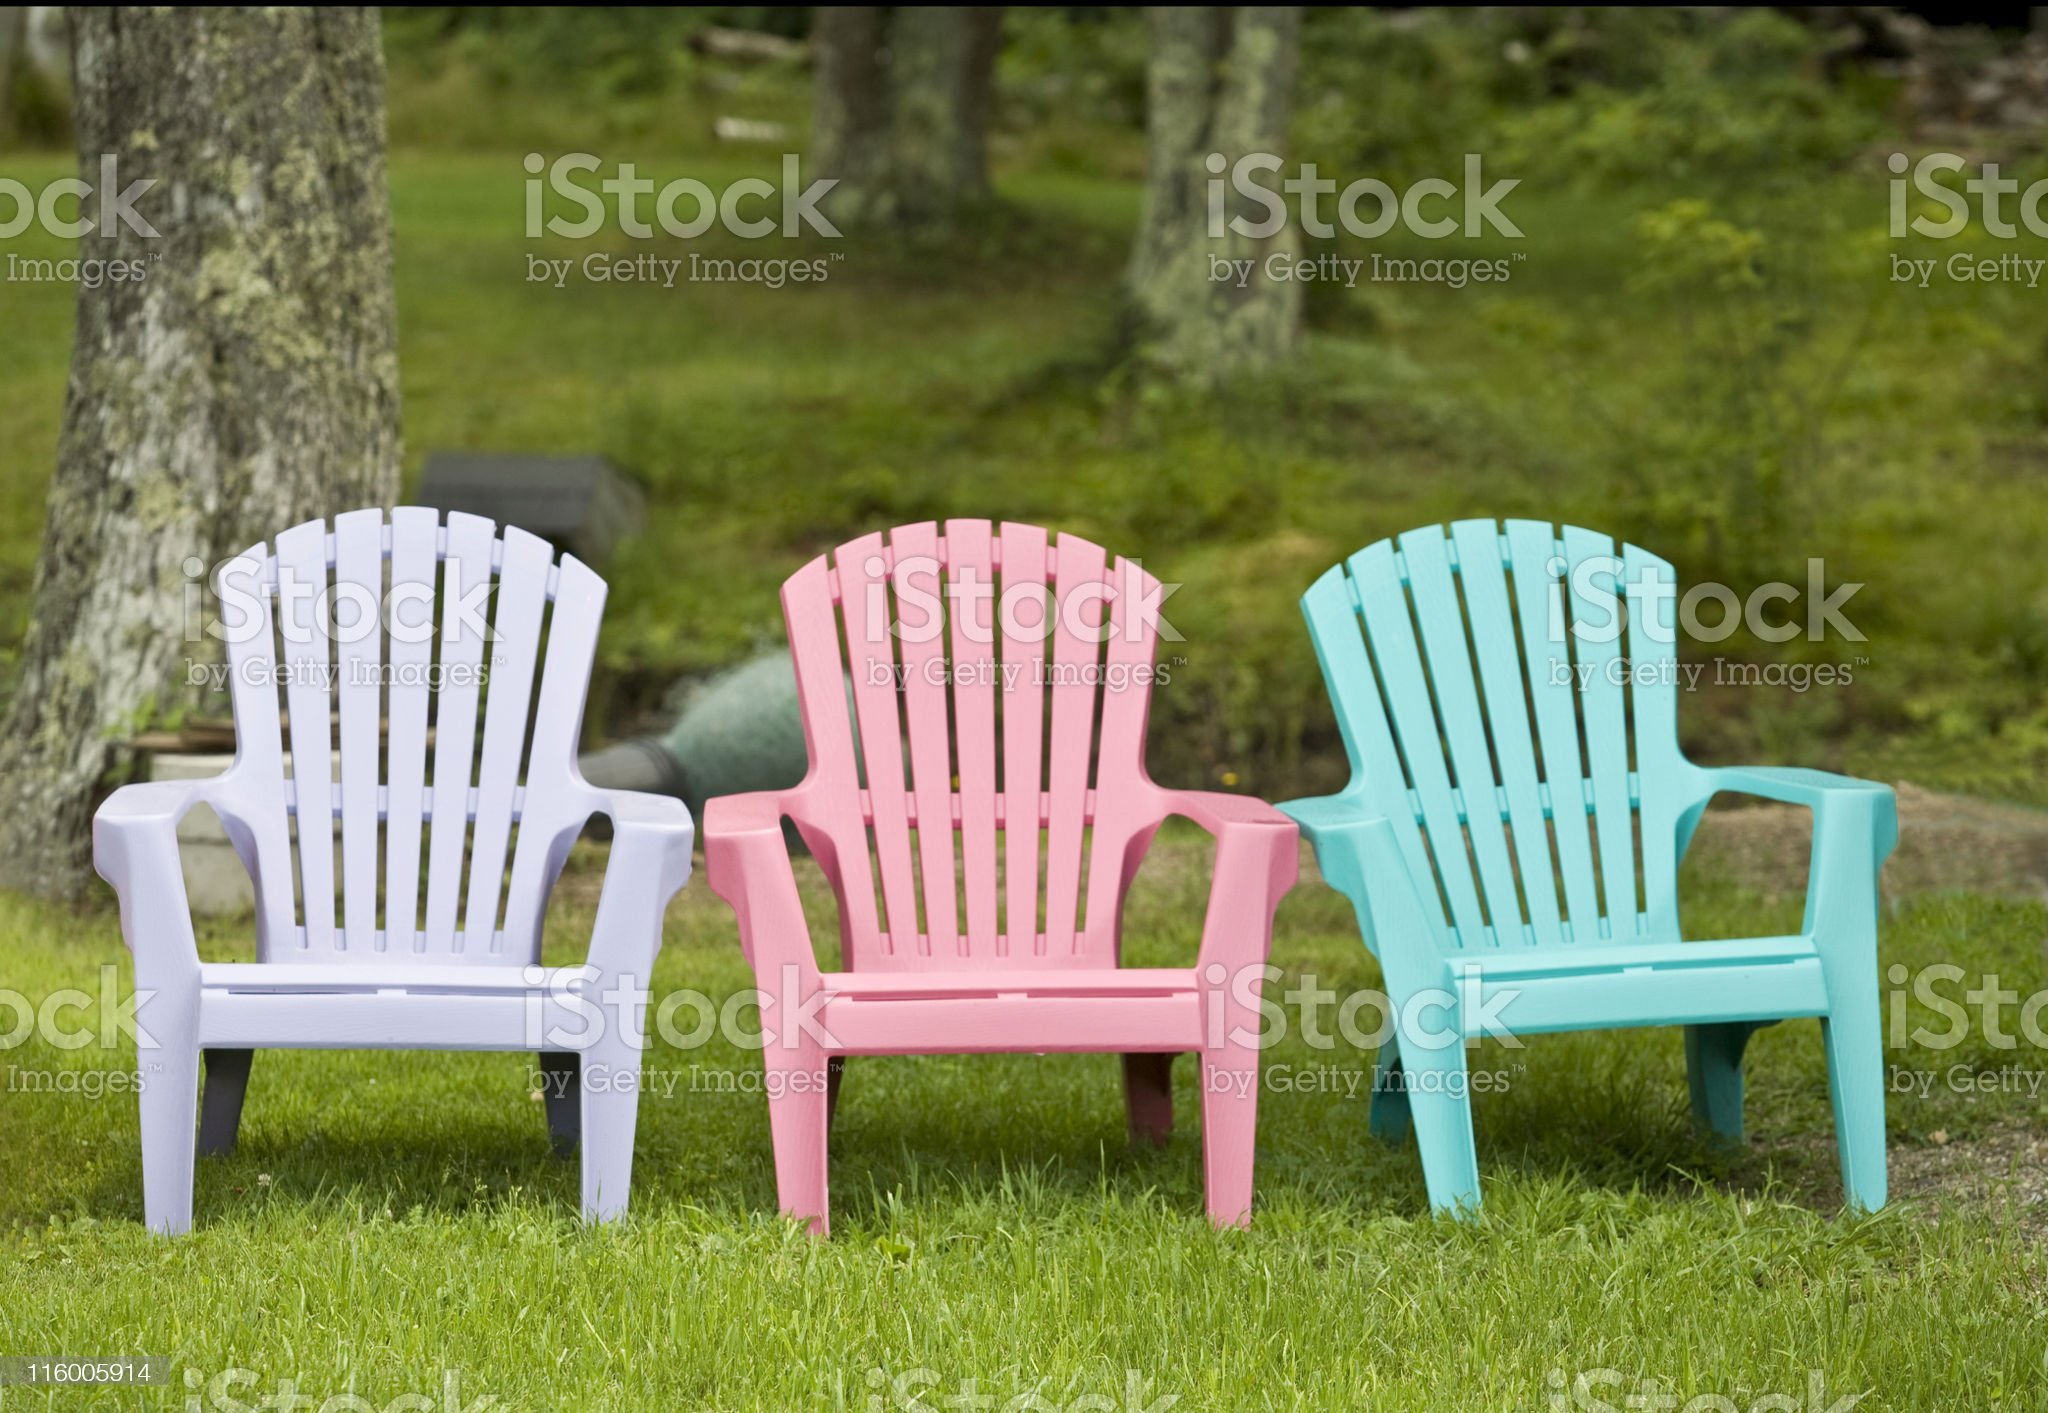 Inviting Chairs royalty-free stock photo